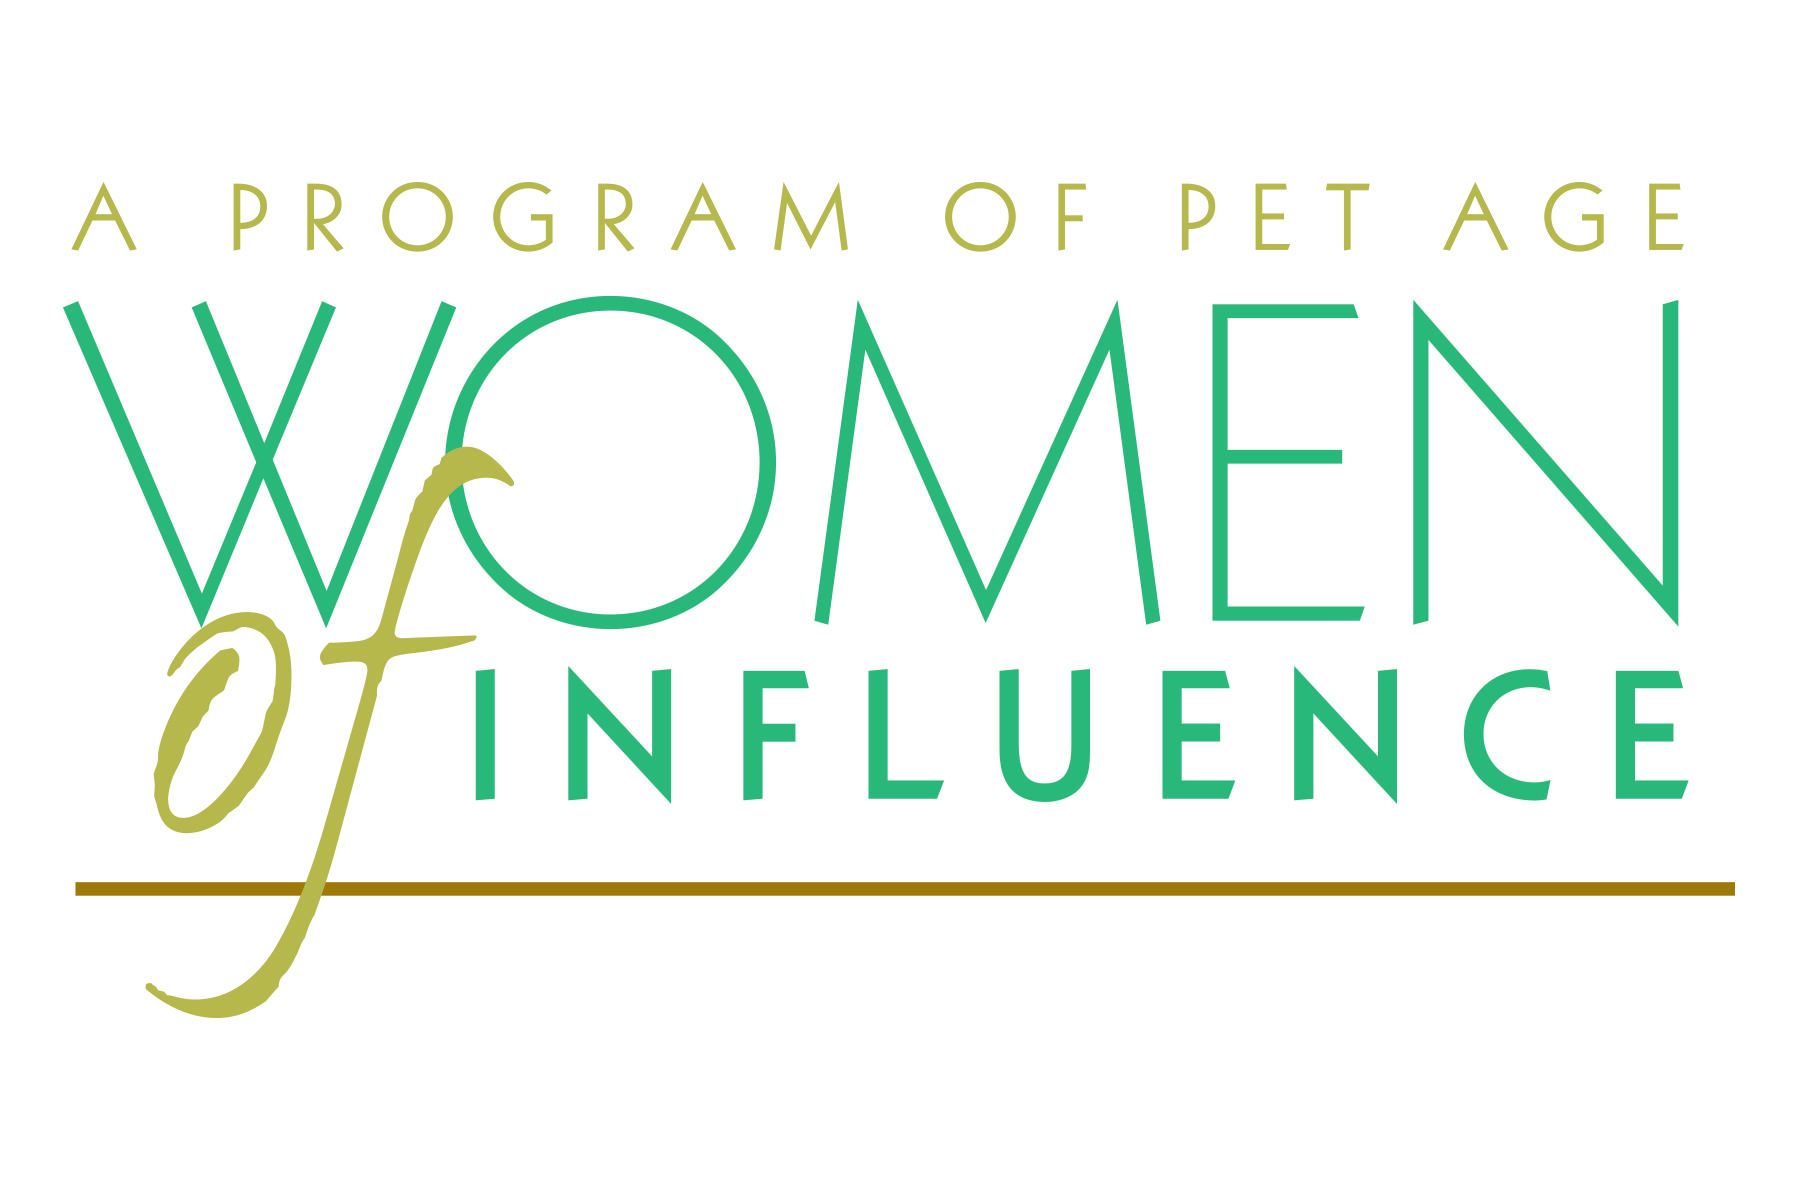 Kristen Levine is a proud recipient of the 2016 Women of Influence Award